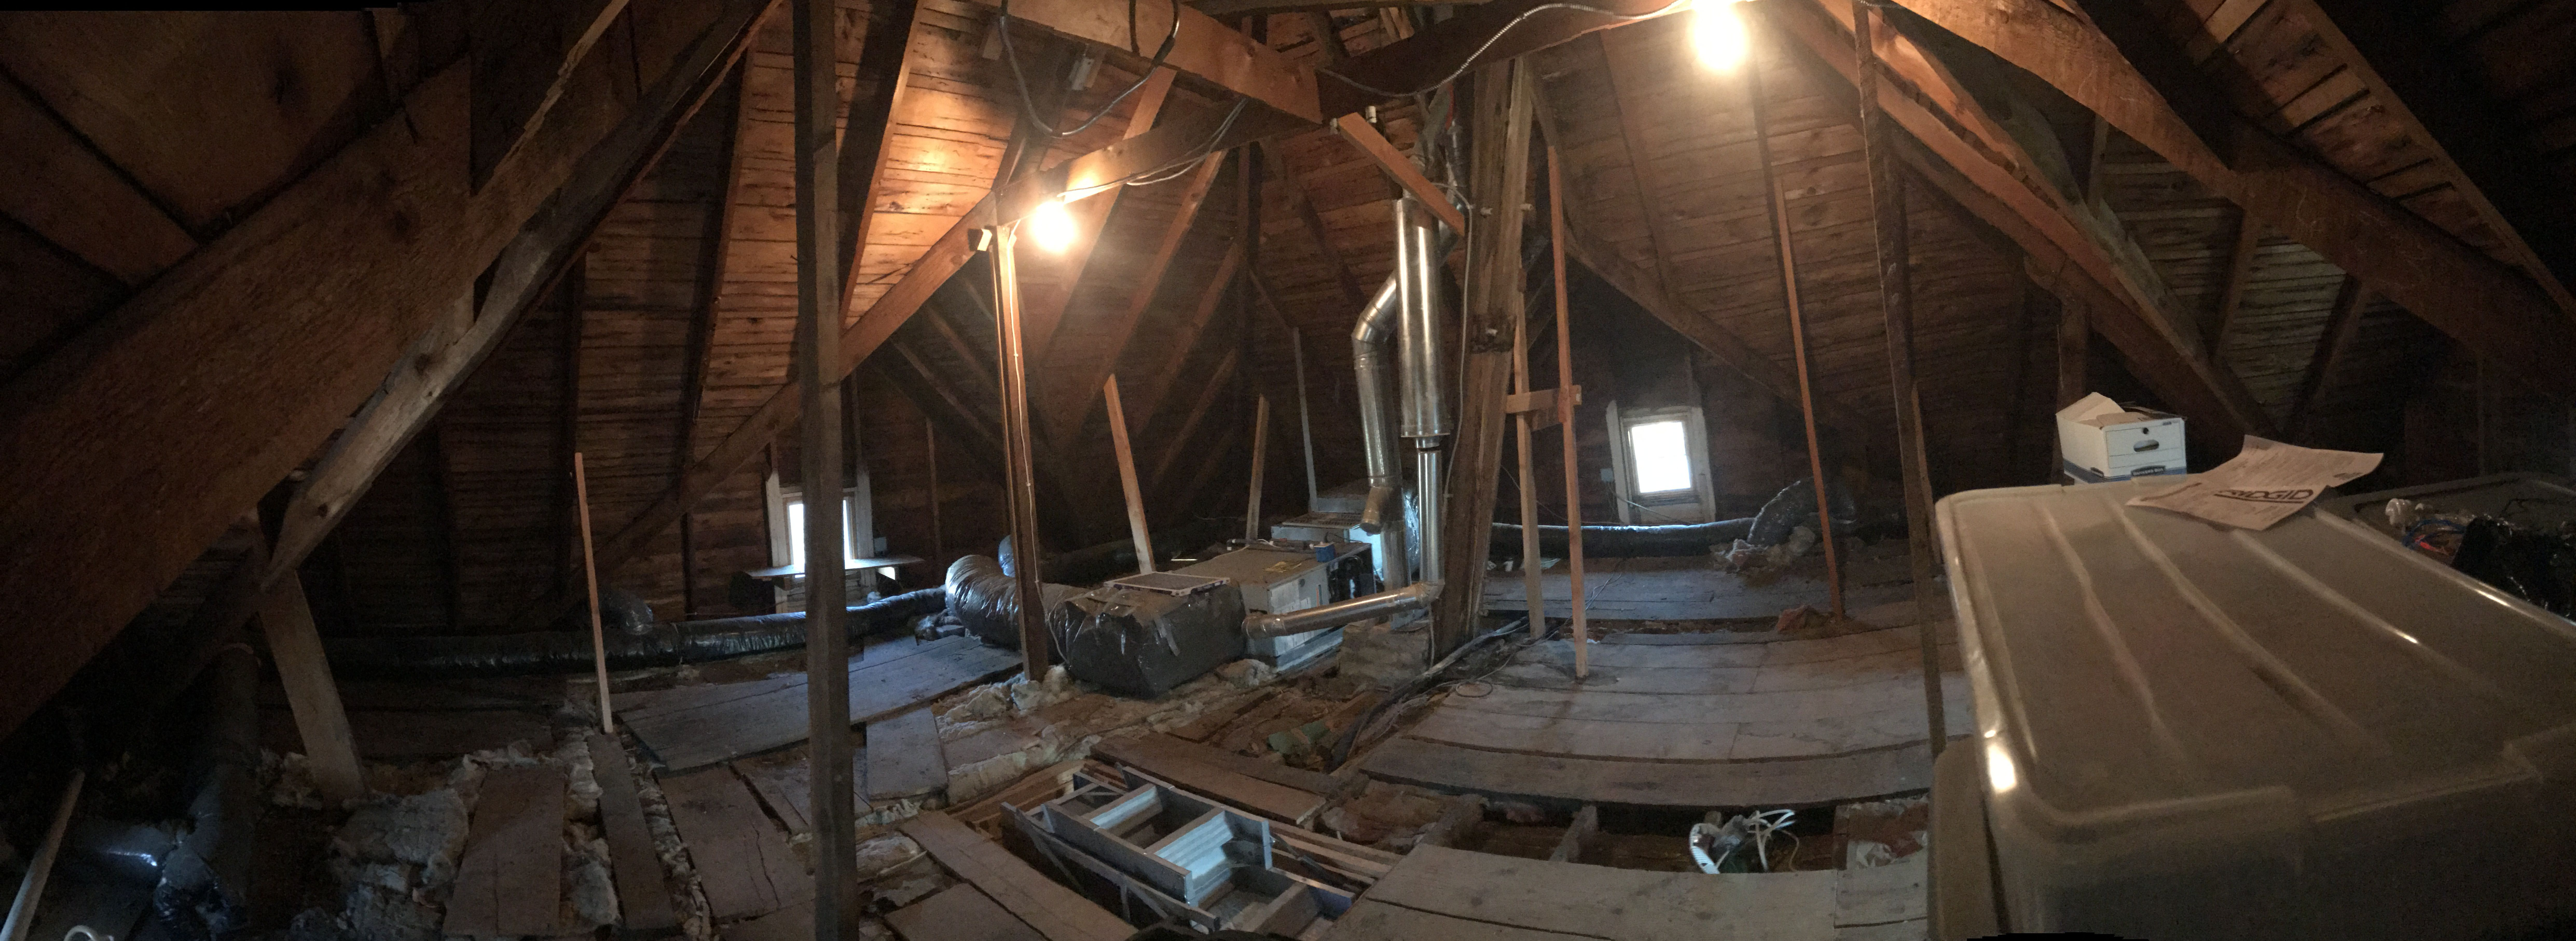 American Four Square Attic Renovation Before My Old House Phase 1 Cleanup Love My New Shop Vac Attic Renovation Old House Renovations